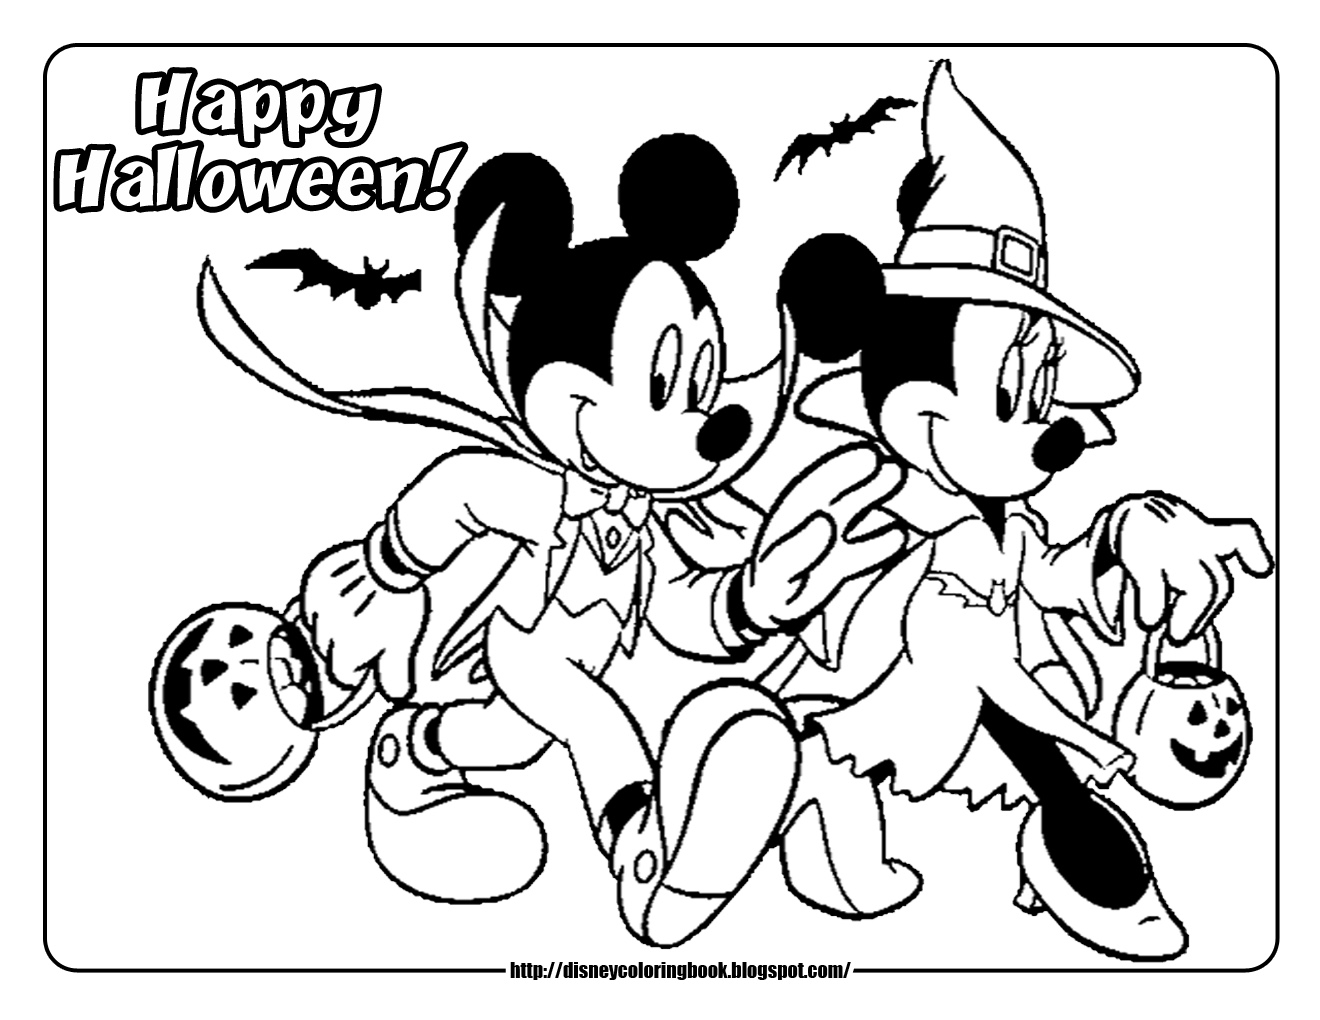 free printable halloween coloring pages for older kids coloring now blog archive halloween coloring pages for free halloween pages printable coloring older for kids